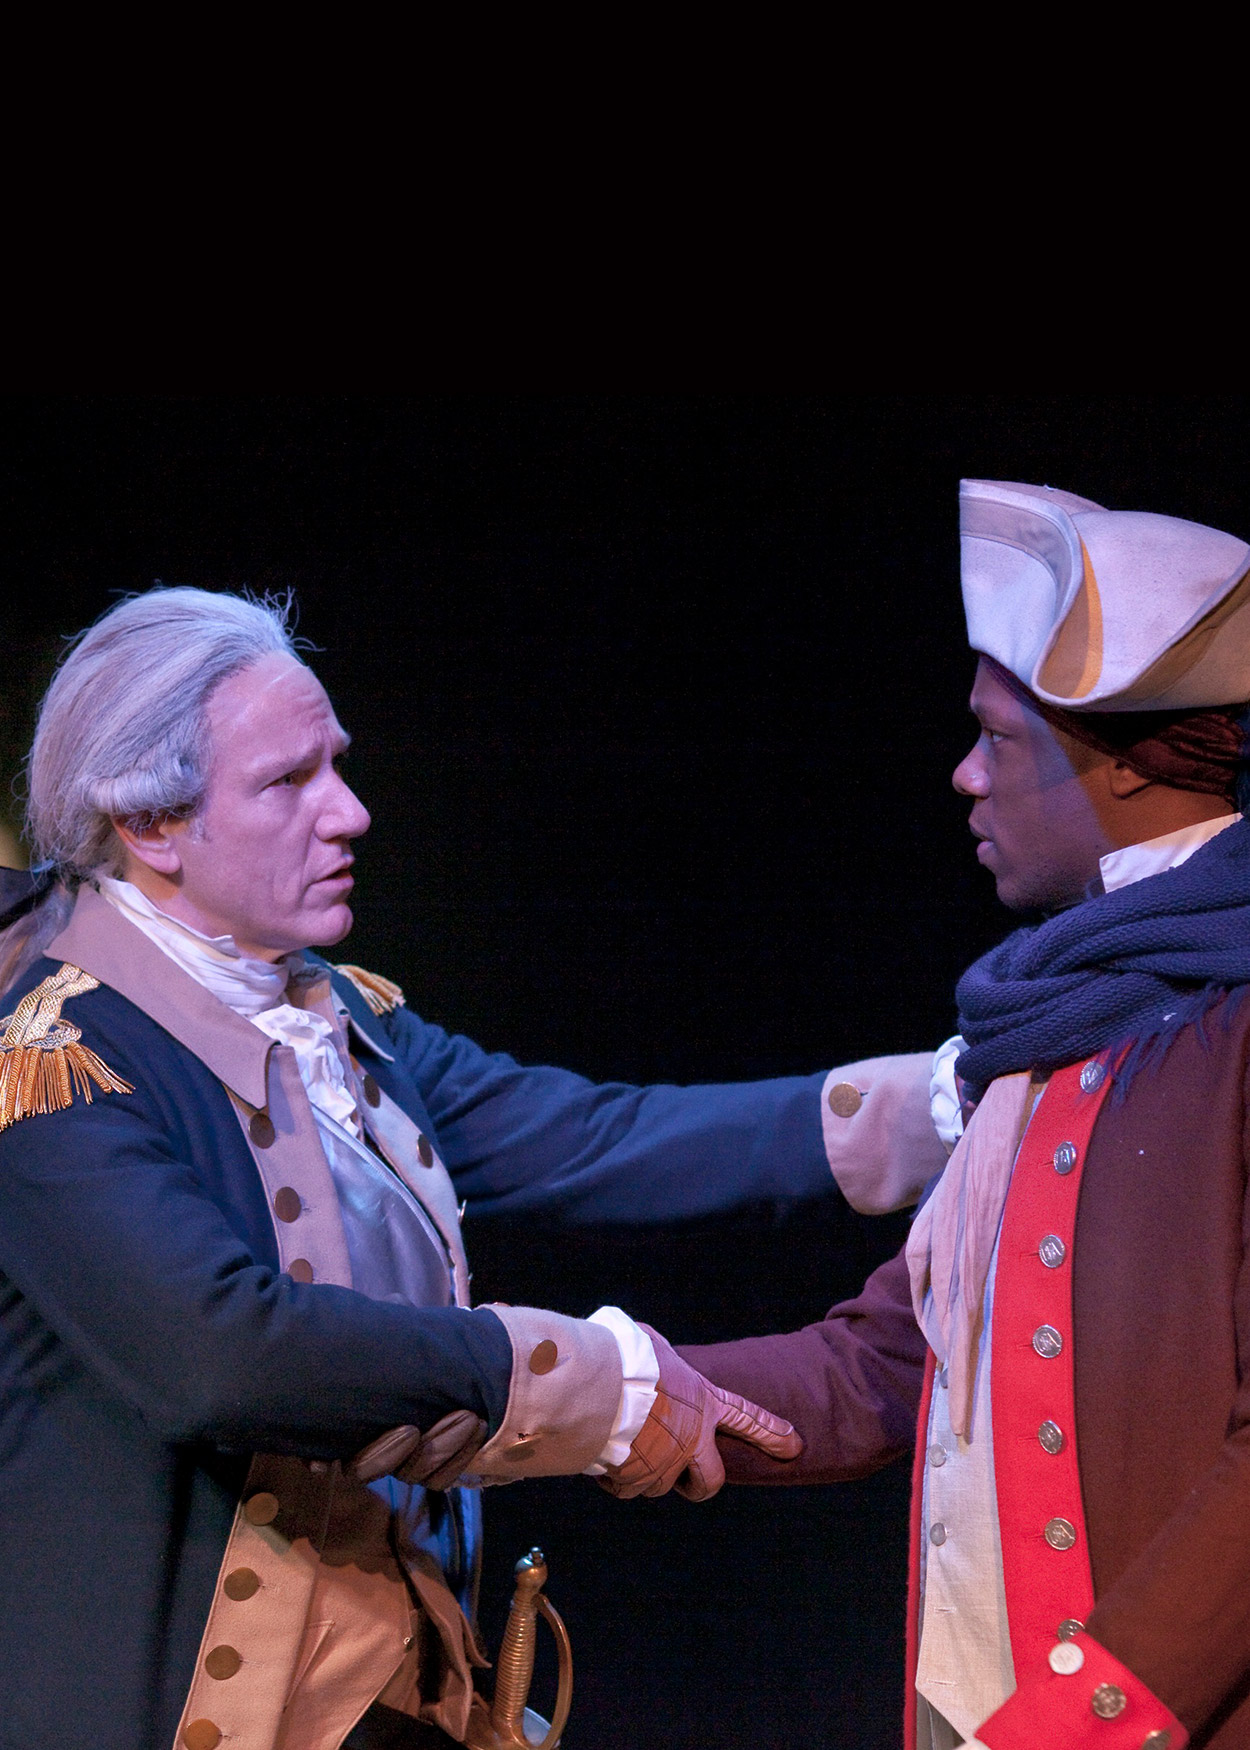 George Washington shakes the hand of another man